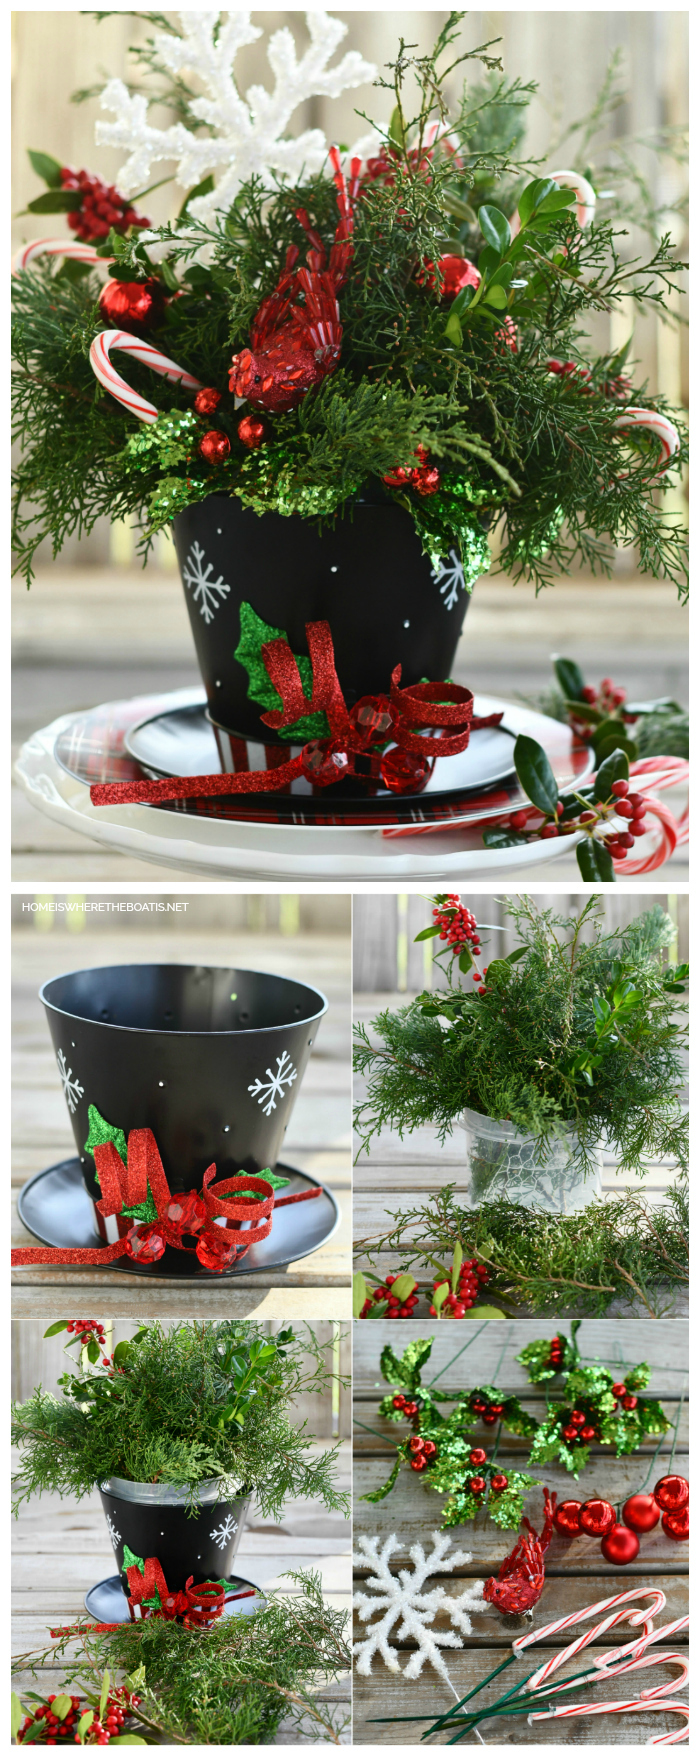 Top Hat Snowman Centerpiece DIY | ©homeiswheretheboatis.net #christmas #snowman #tablescape #DIY